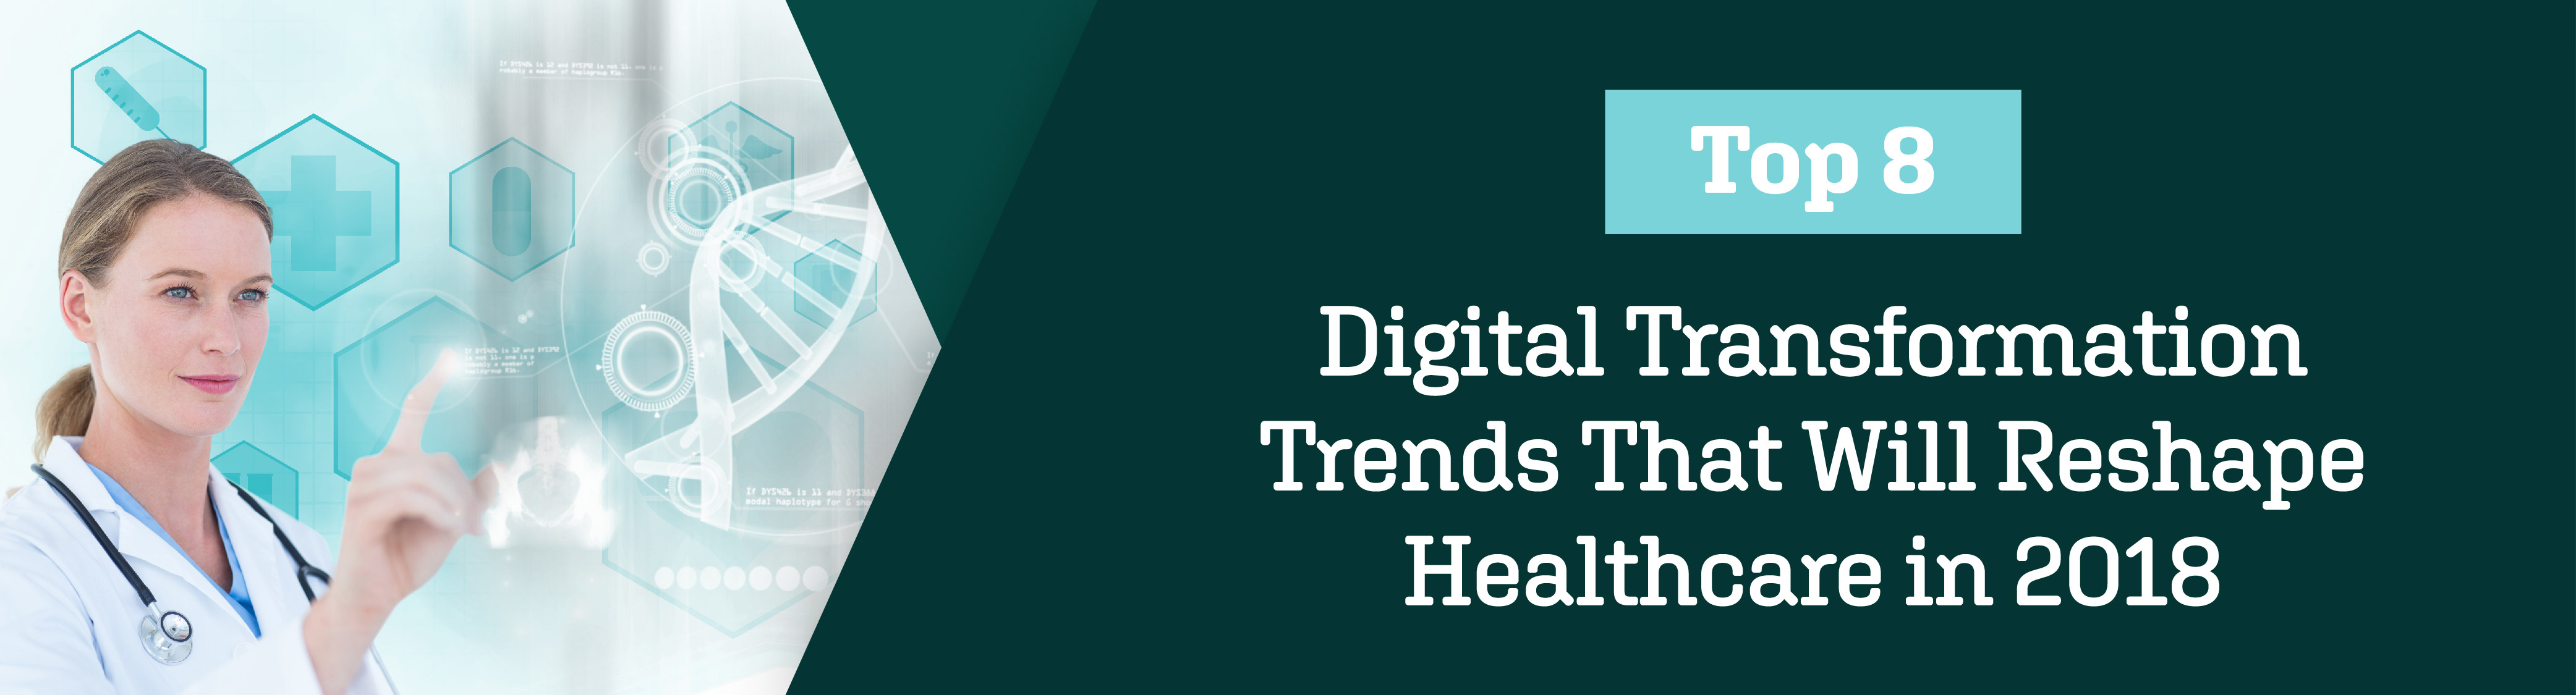 DT Trends that will reshape healthcare-01_0